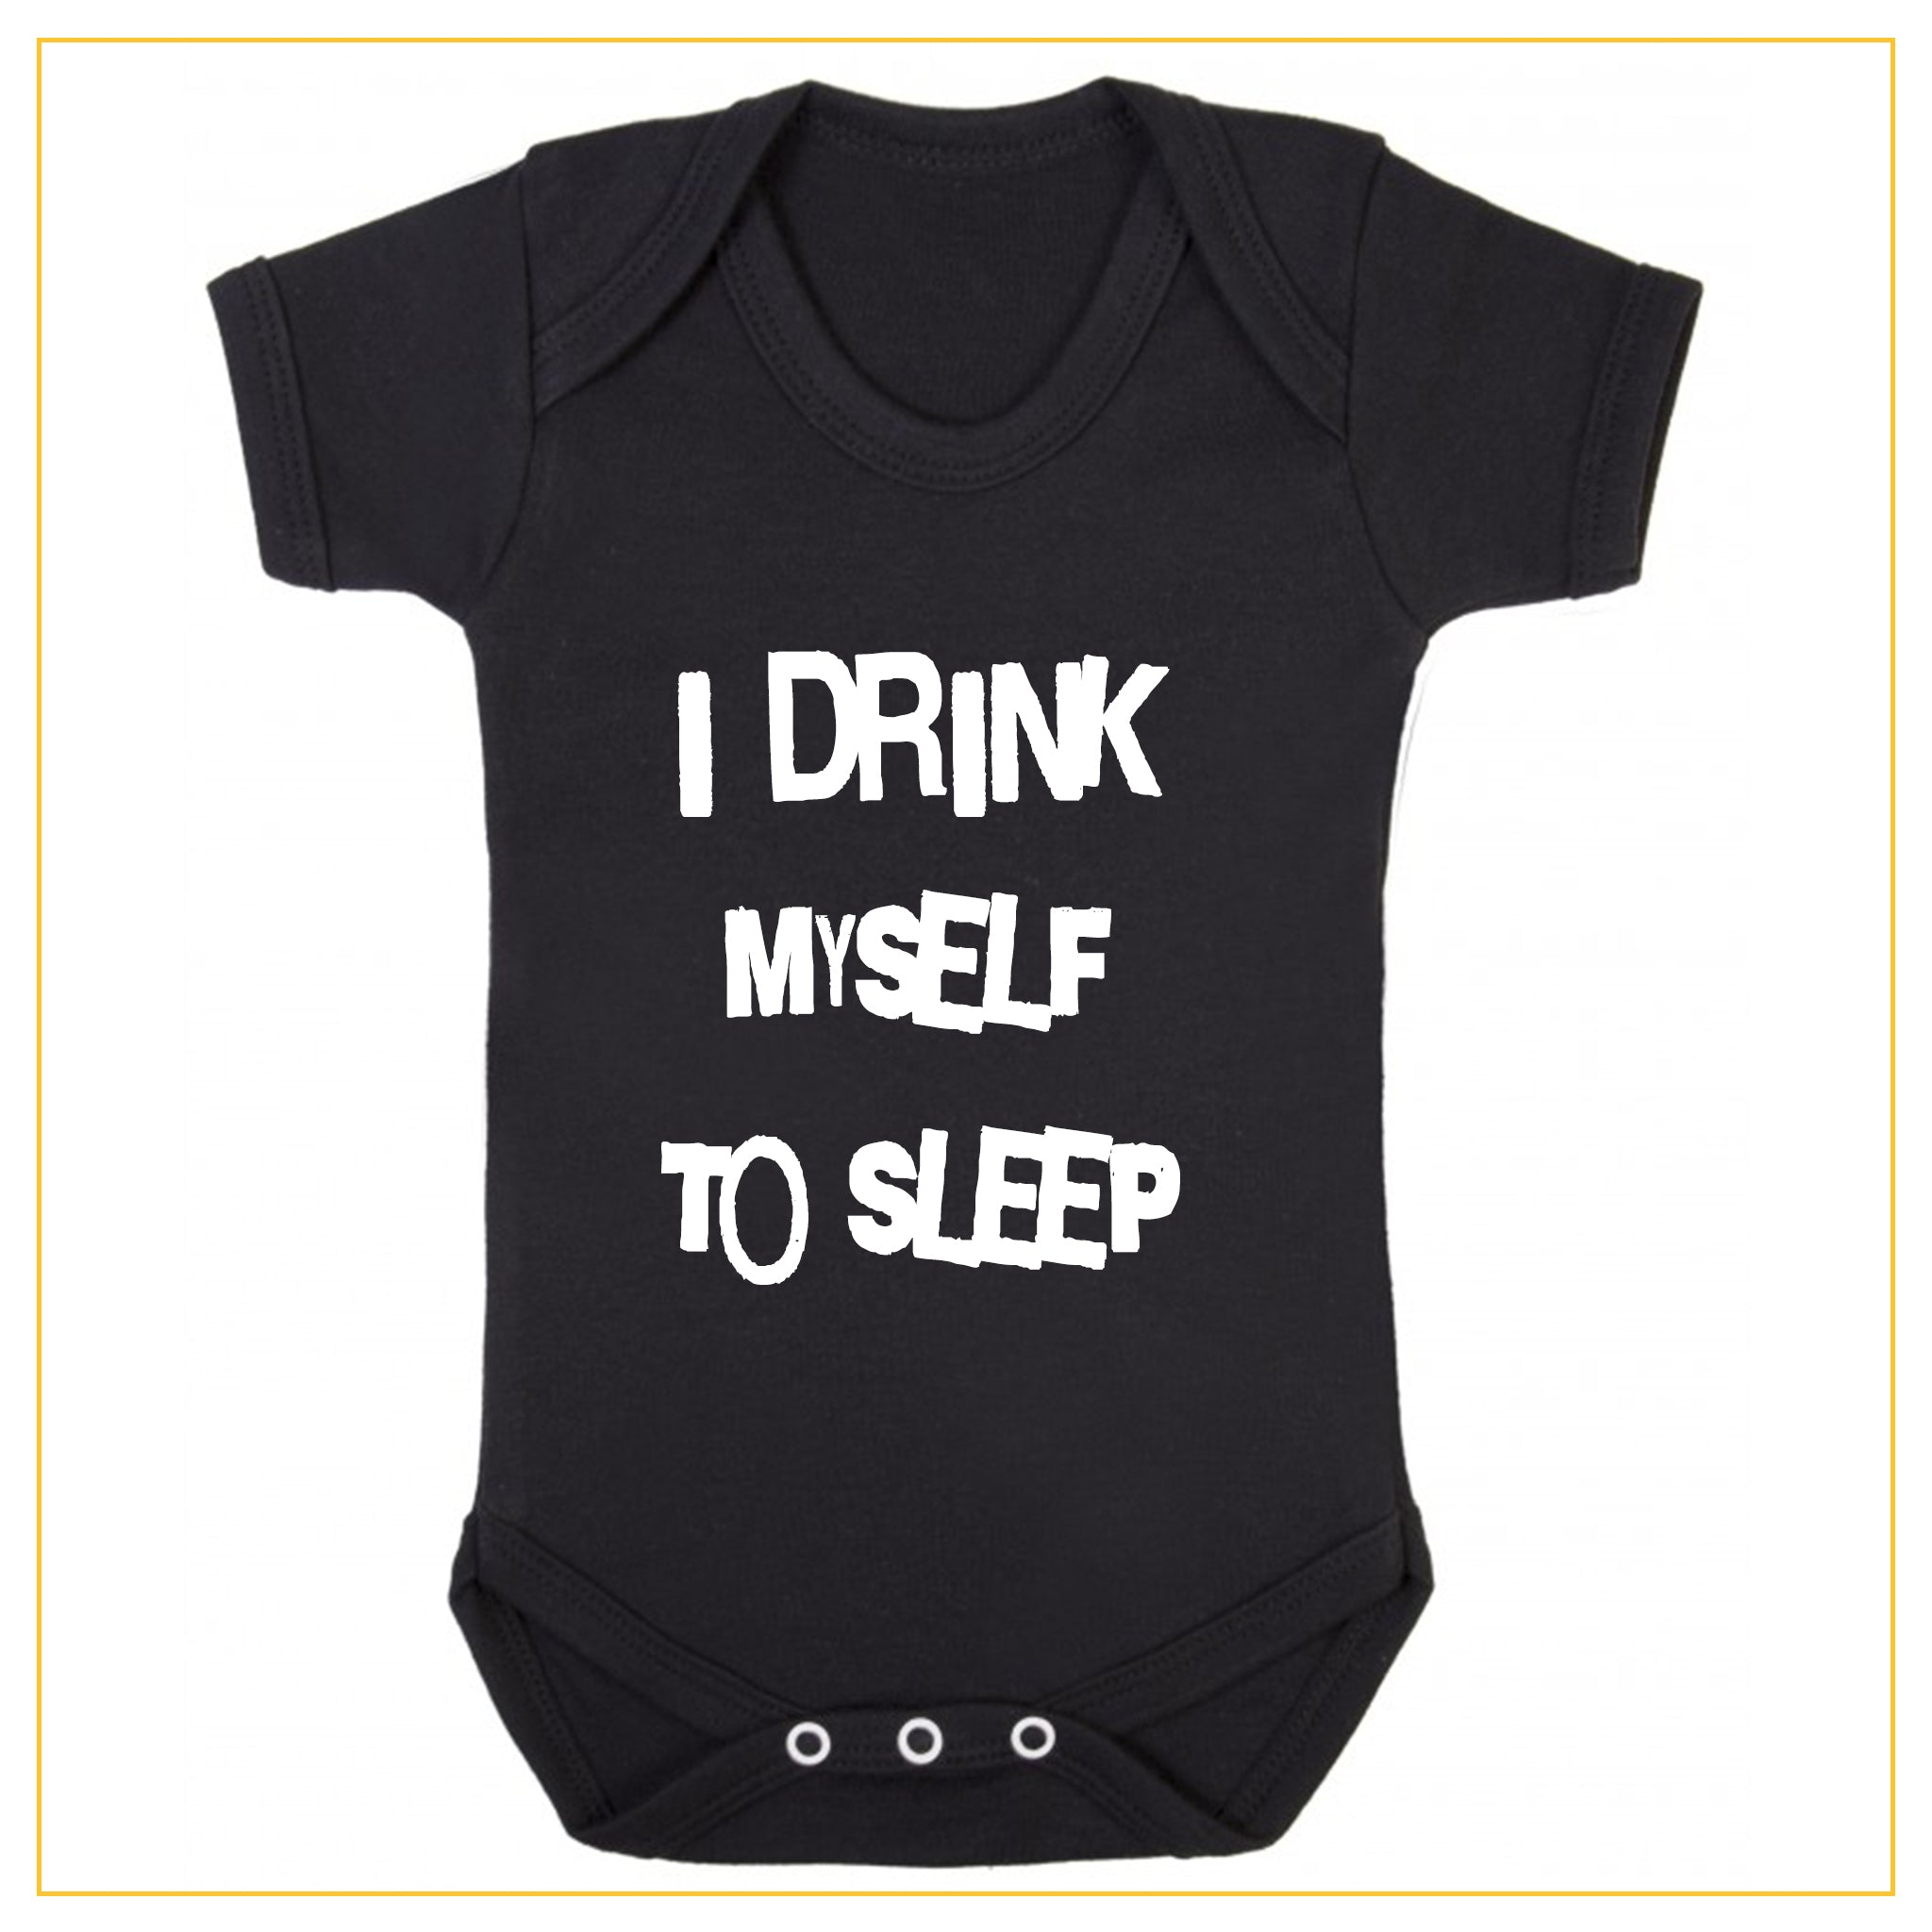 I drink myself to sleep baby onesie in black